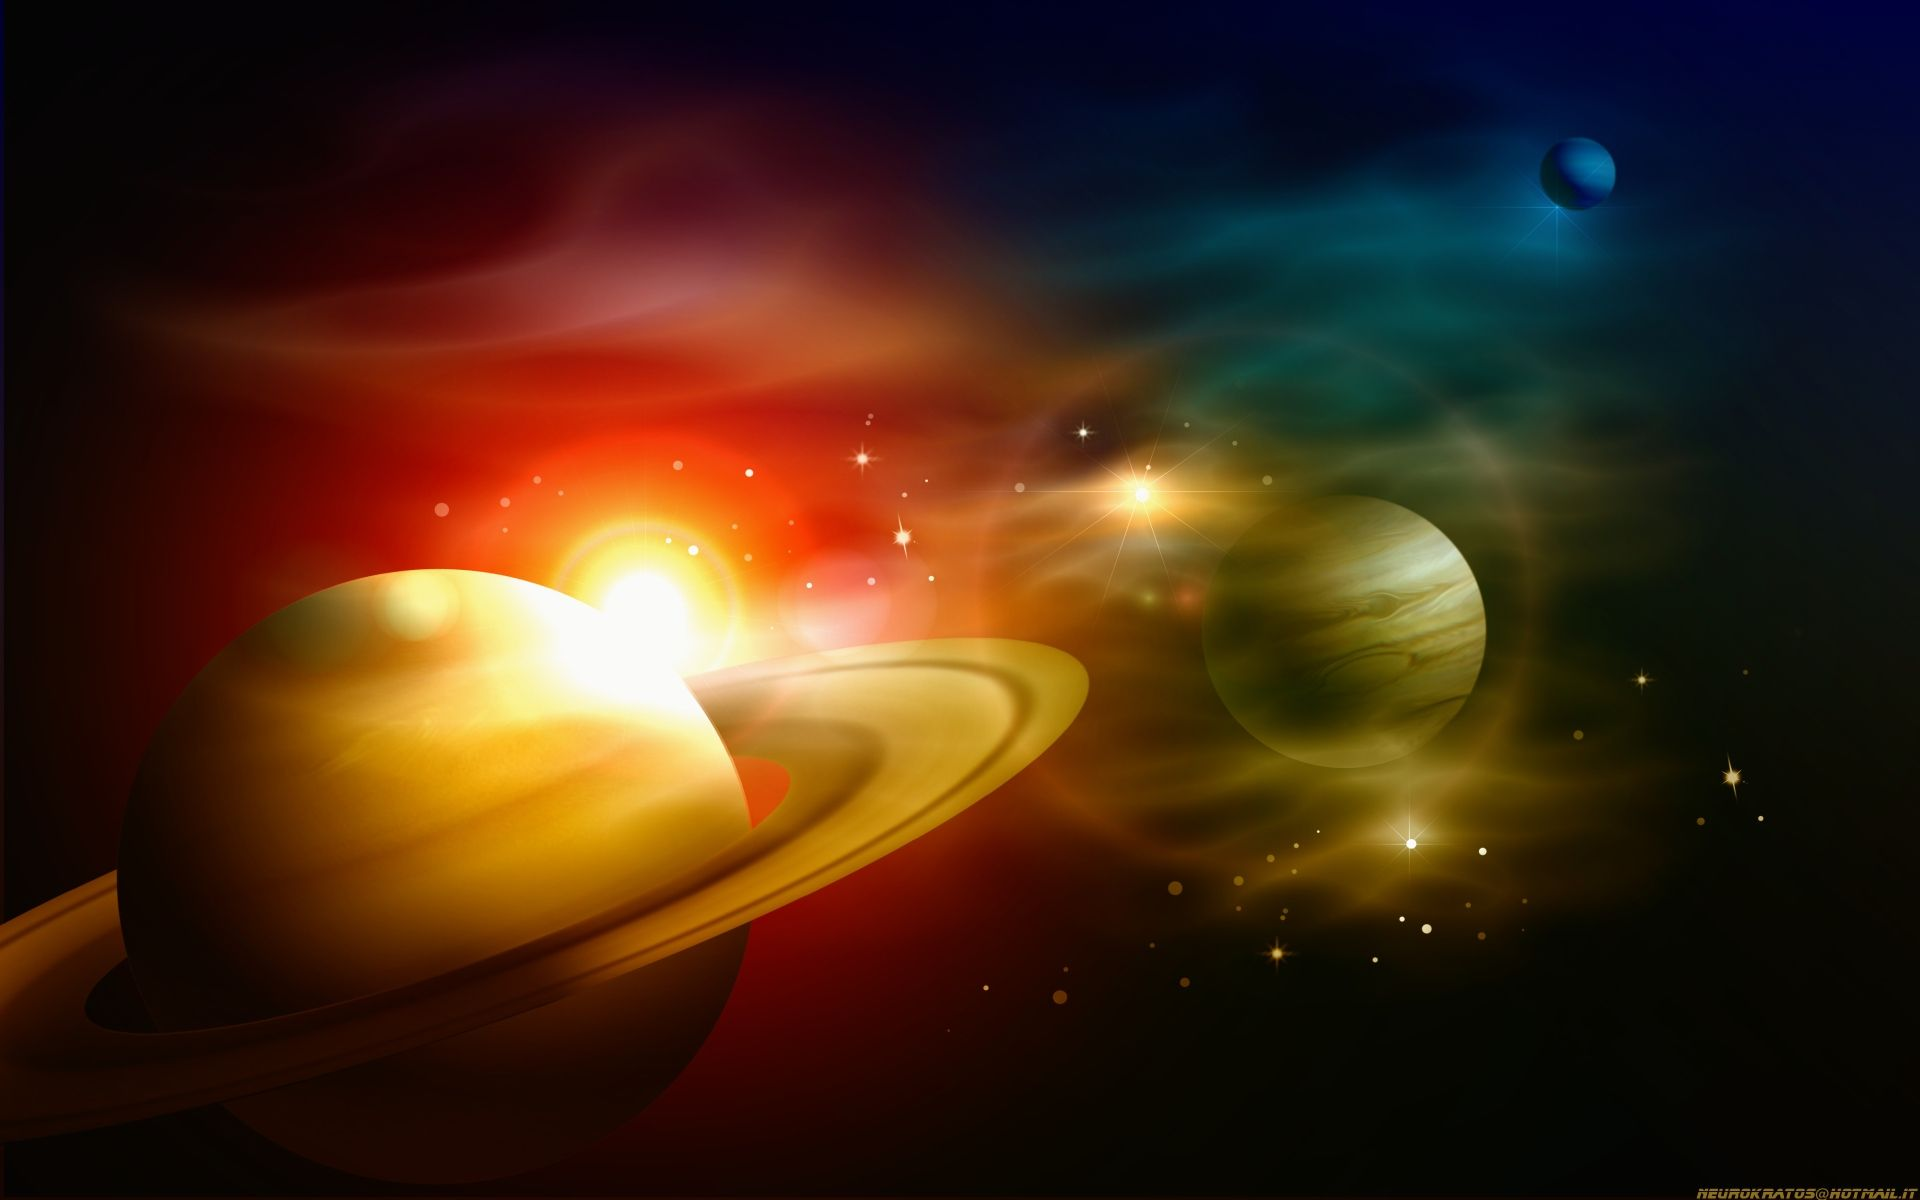 Space star sun pixel wallpaper solar planets wallpapers for Space and outer space